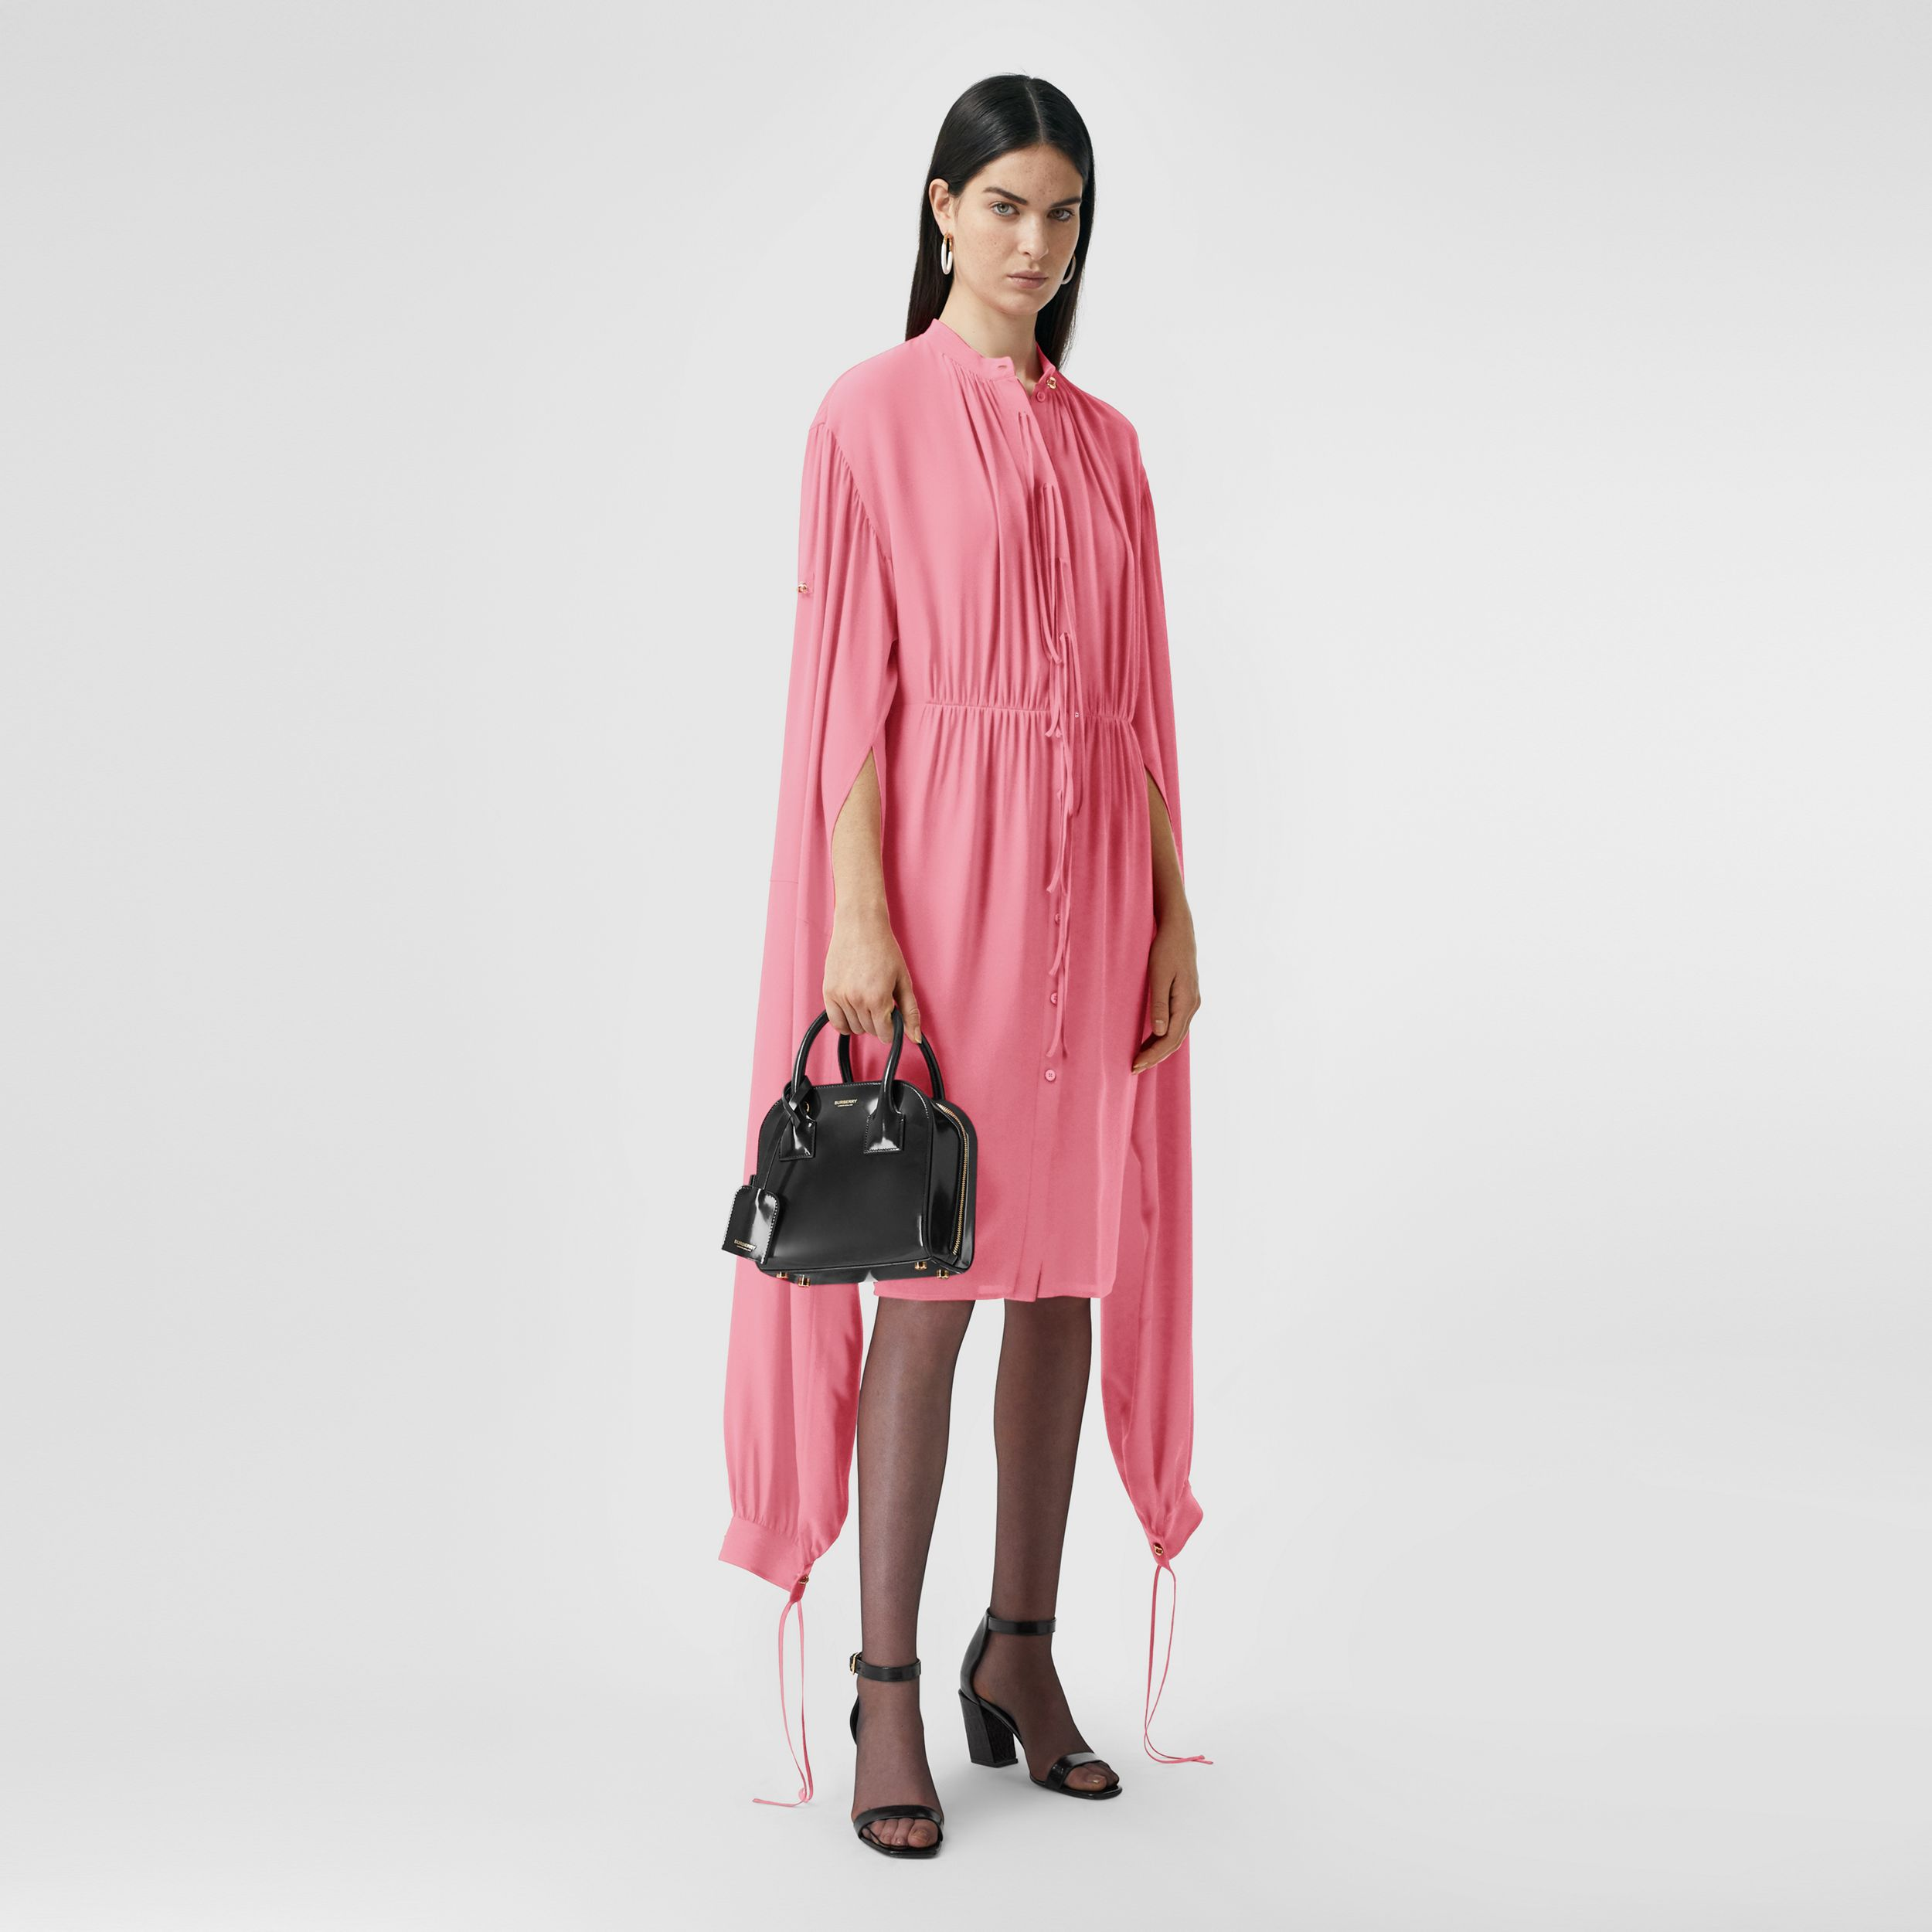 Loop-back Sleeve Silk Crepe De Chine Dress in Bubblegum Pink - Women | Burberry Australia - 1